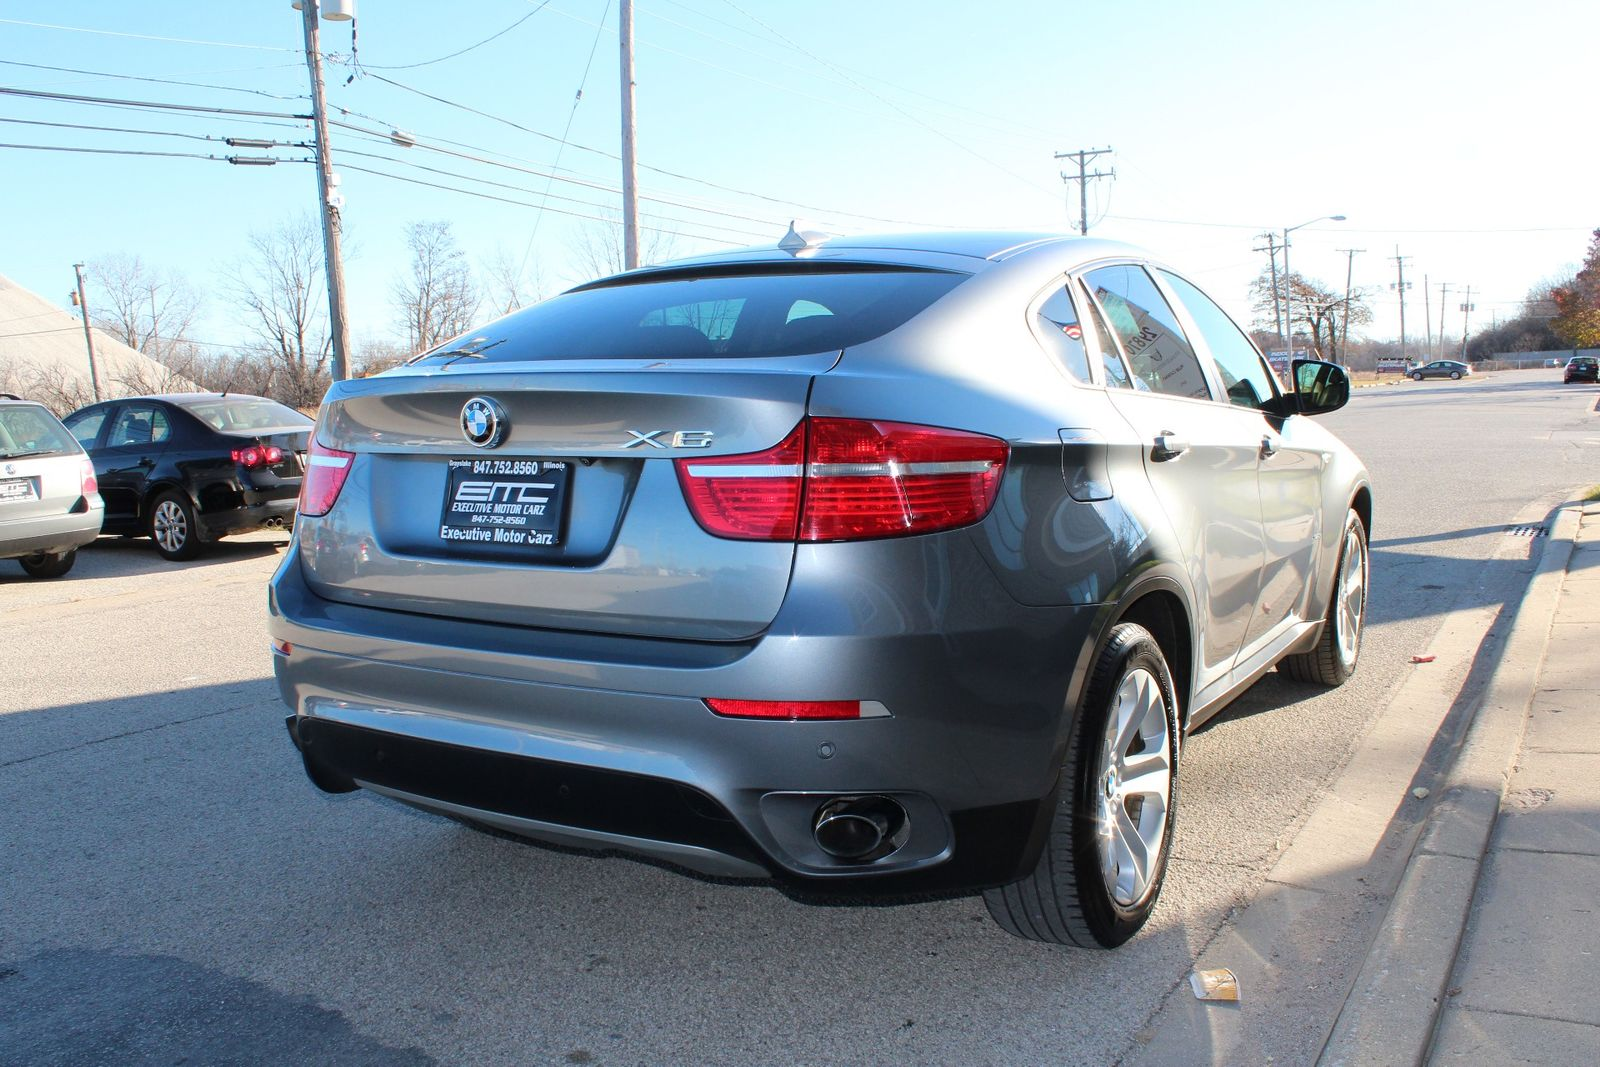 2009 bmw x6 xdrive35i lake bluff il executive motor carz in lake bluff